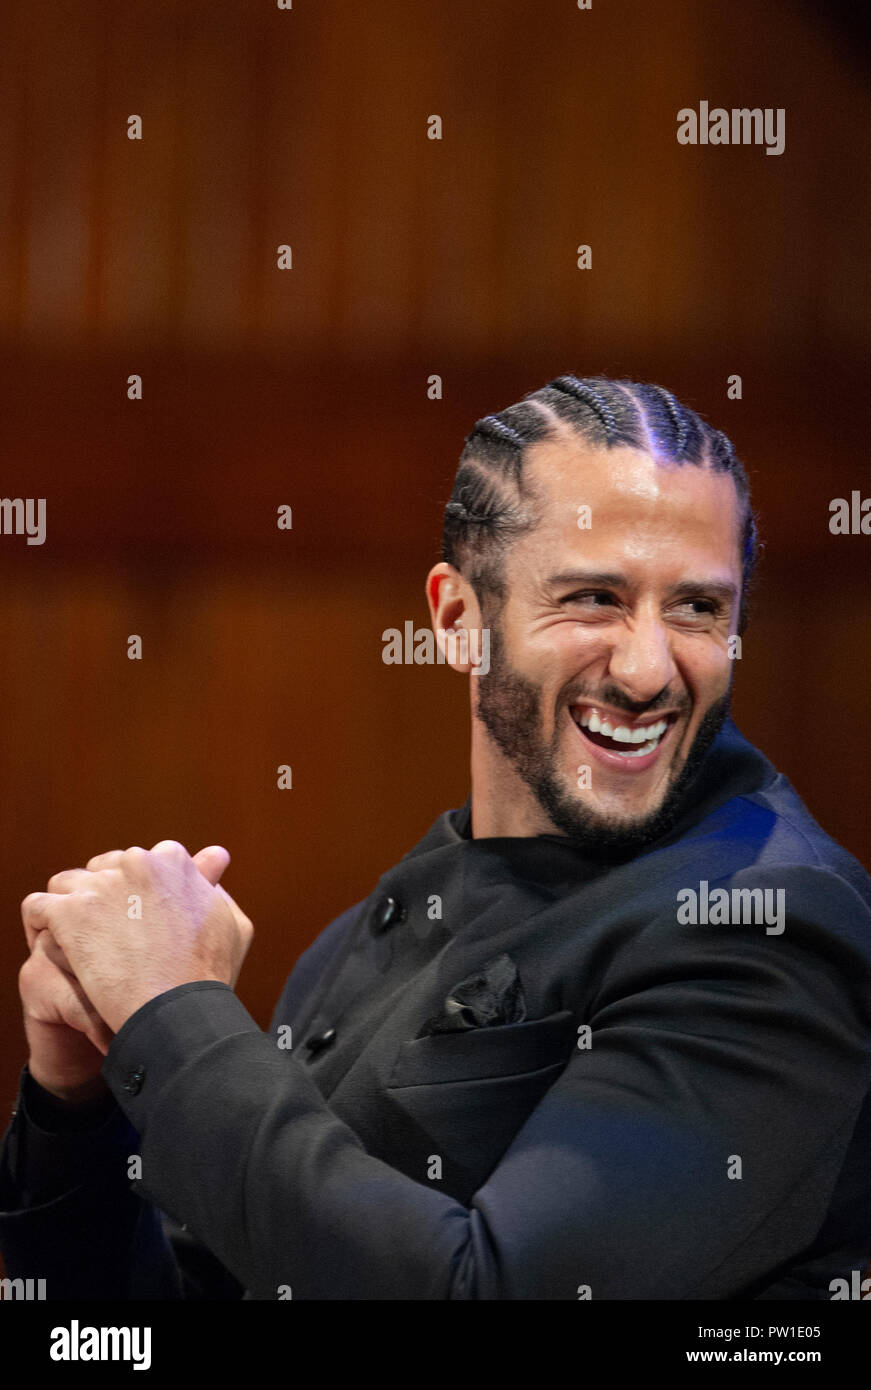 Hutchins Center, Harvard University, Cambridge, MA, USA. 11th Oct 2018. Colin Kaepernick during the 2018 W.E.B. Du Bois medal ceremony at Harvard University in Cambridge, Massachusetts, USA.   Kaepernick, a former NFL quarterback for  the San Francisco 49ers became an American icon after keeling during the U.S. National anthem in protest of Police violence against black Americans. Credit: Chuck Nacke/Alamy Live News - Stock Image